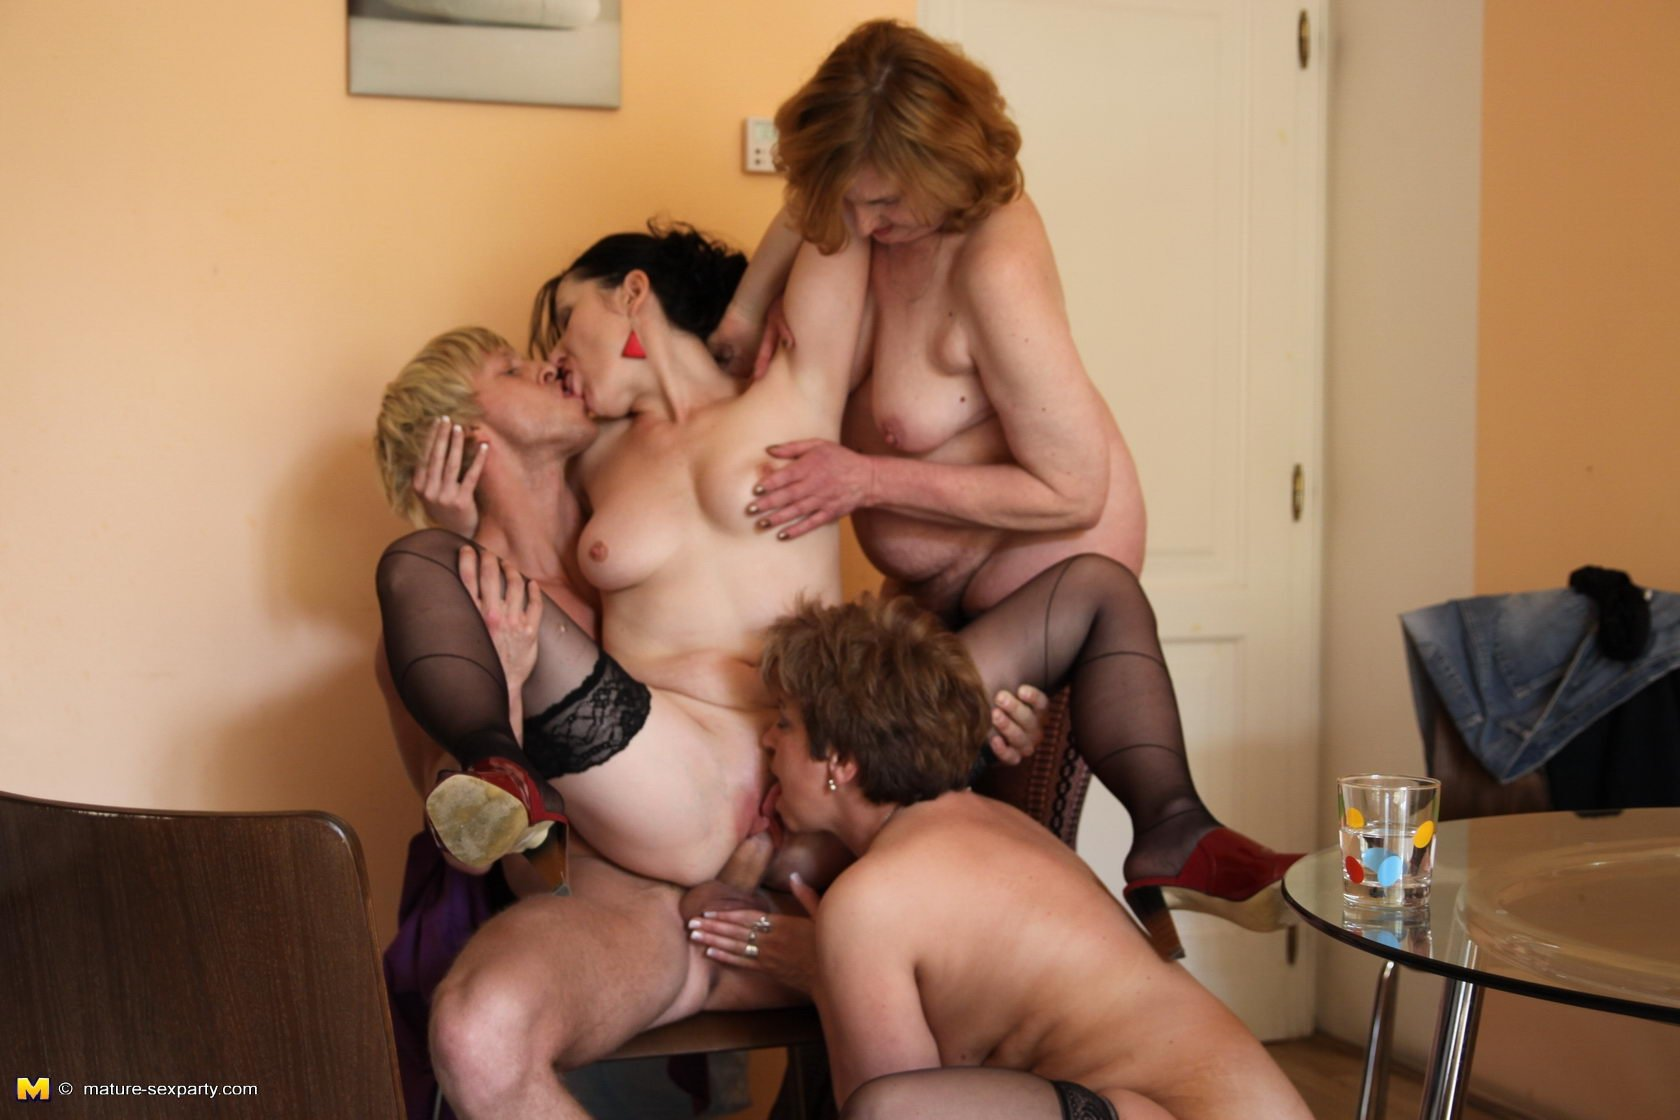 thai party xxx real ex girlfriends madison ivy